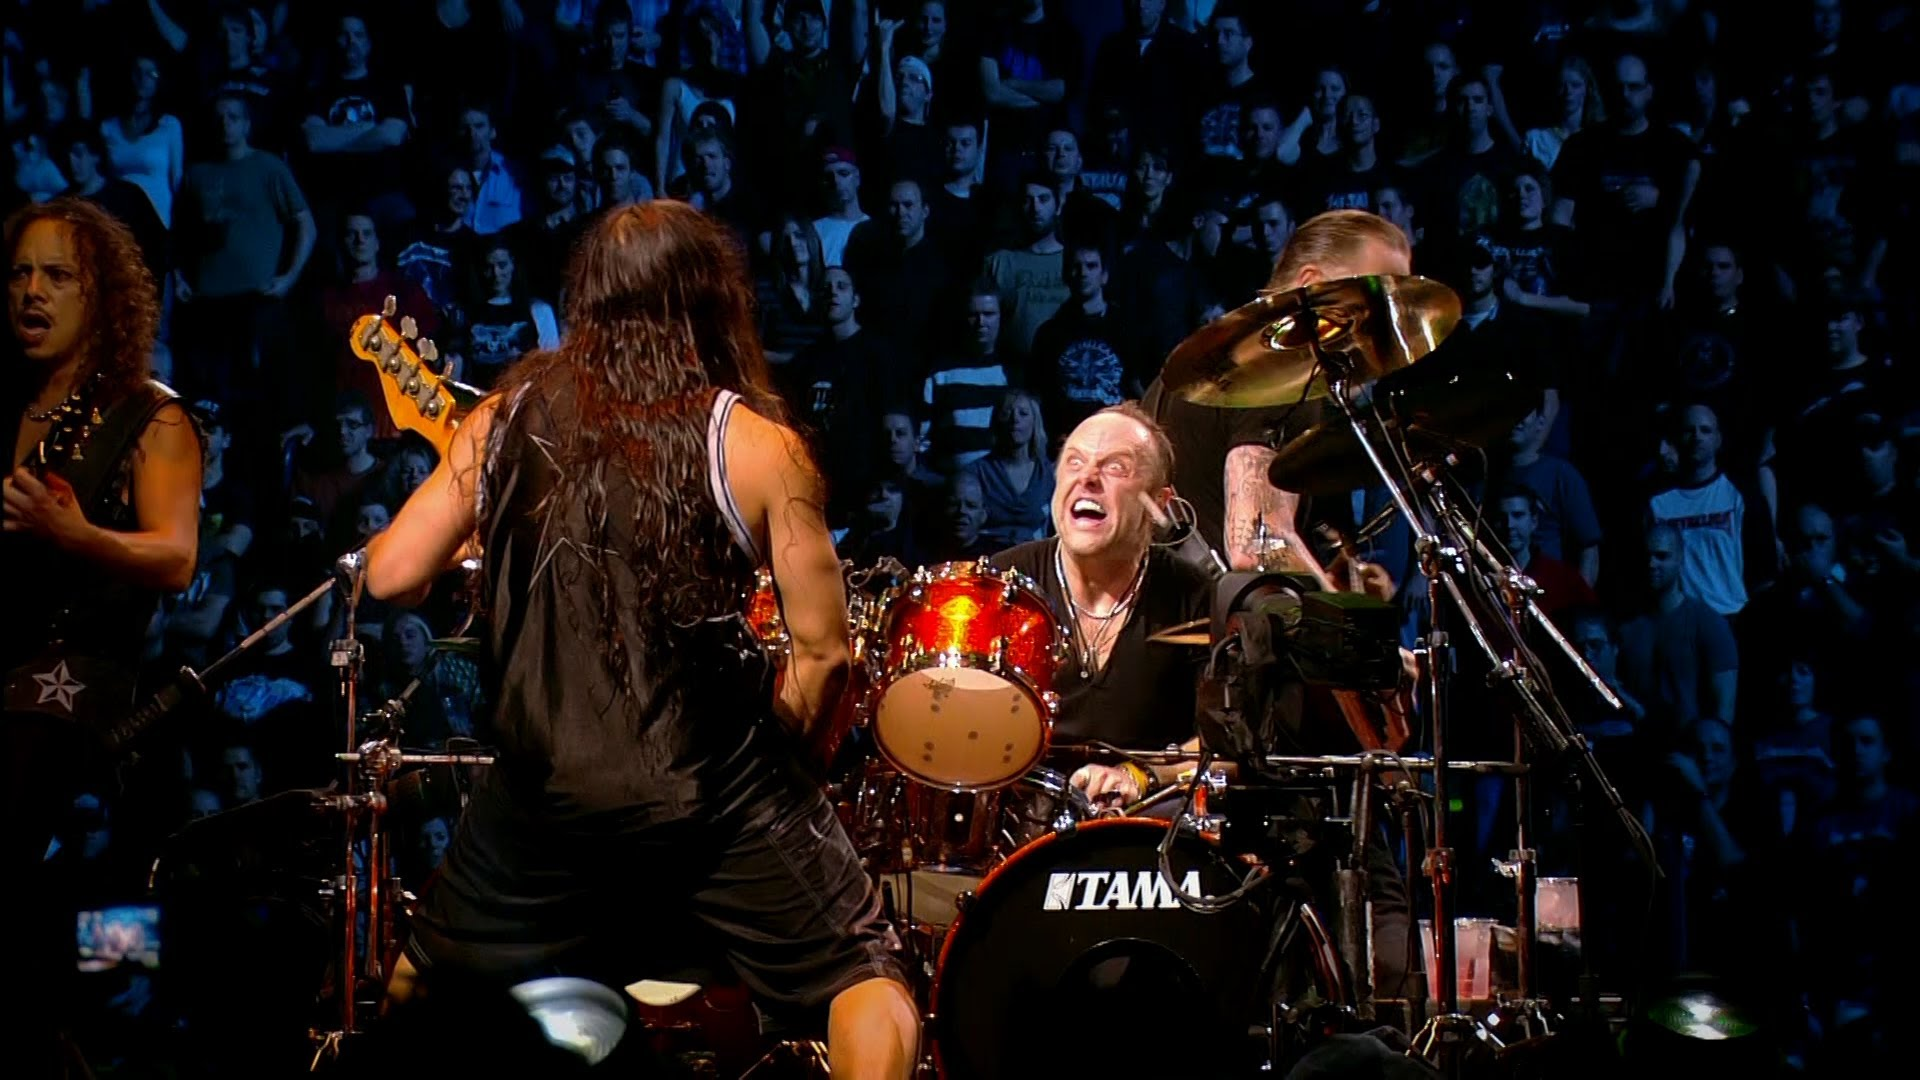 Metallica - Master of Puppets (Live) Quebec Magnetic